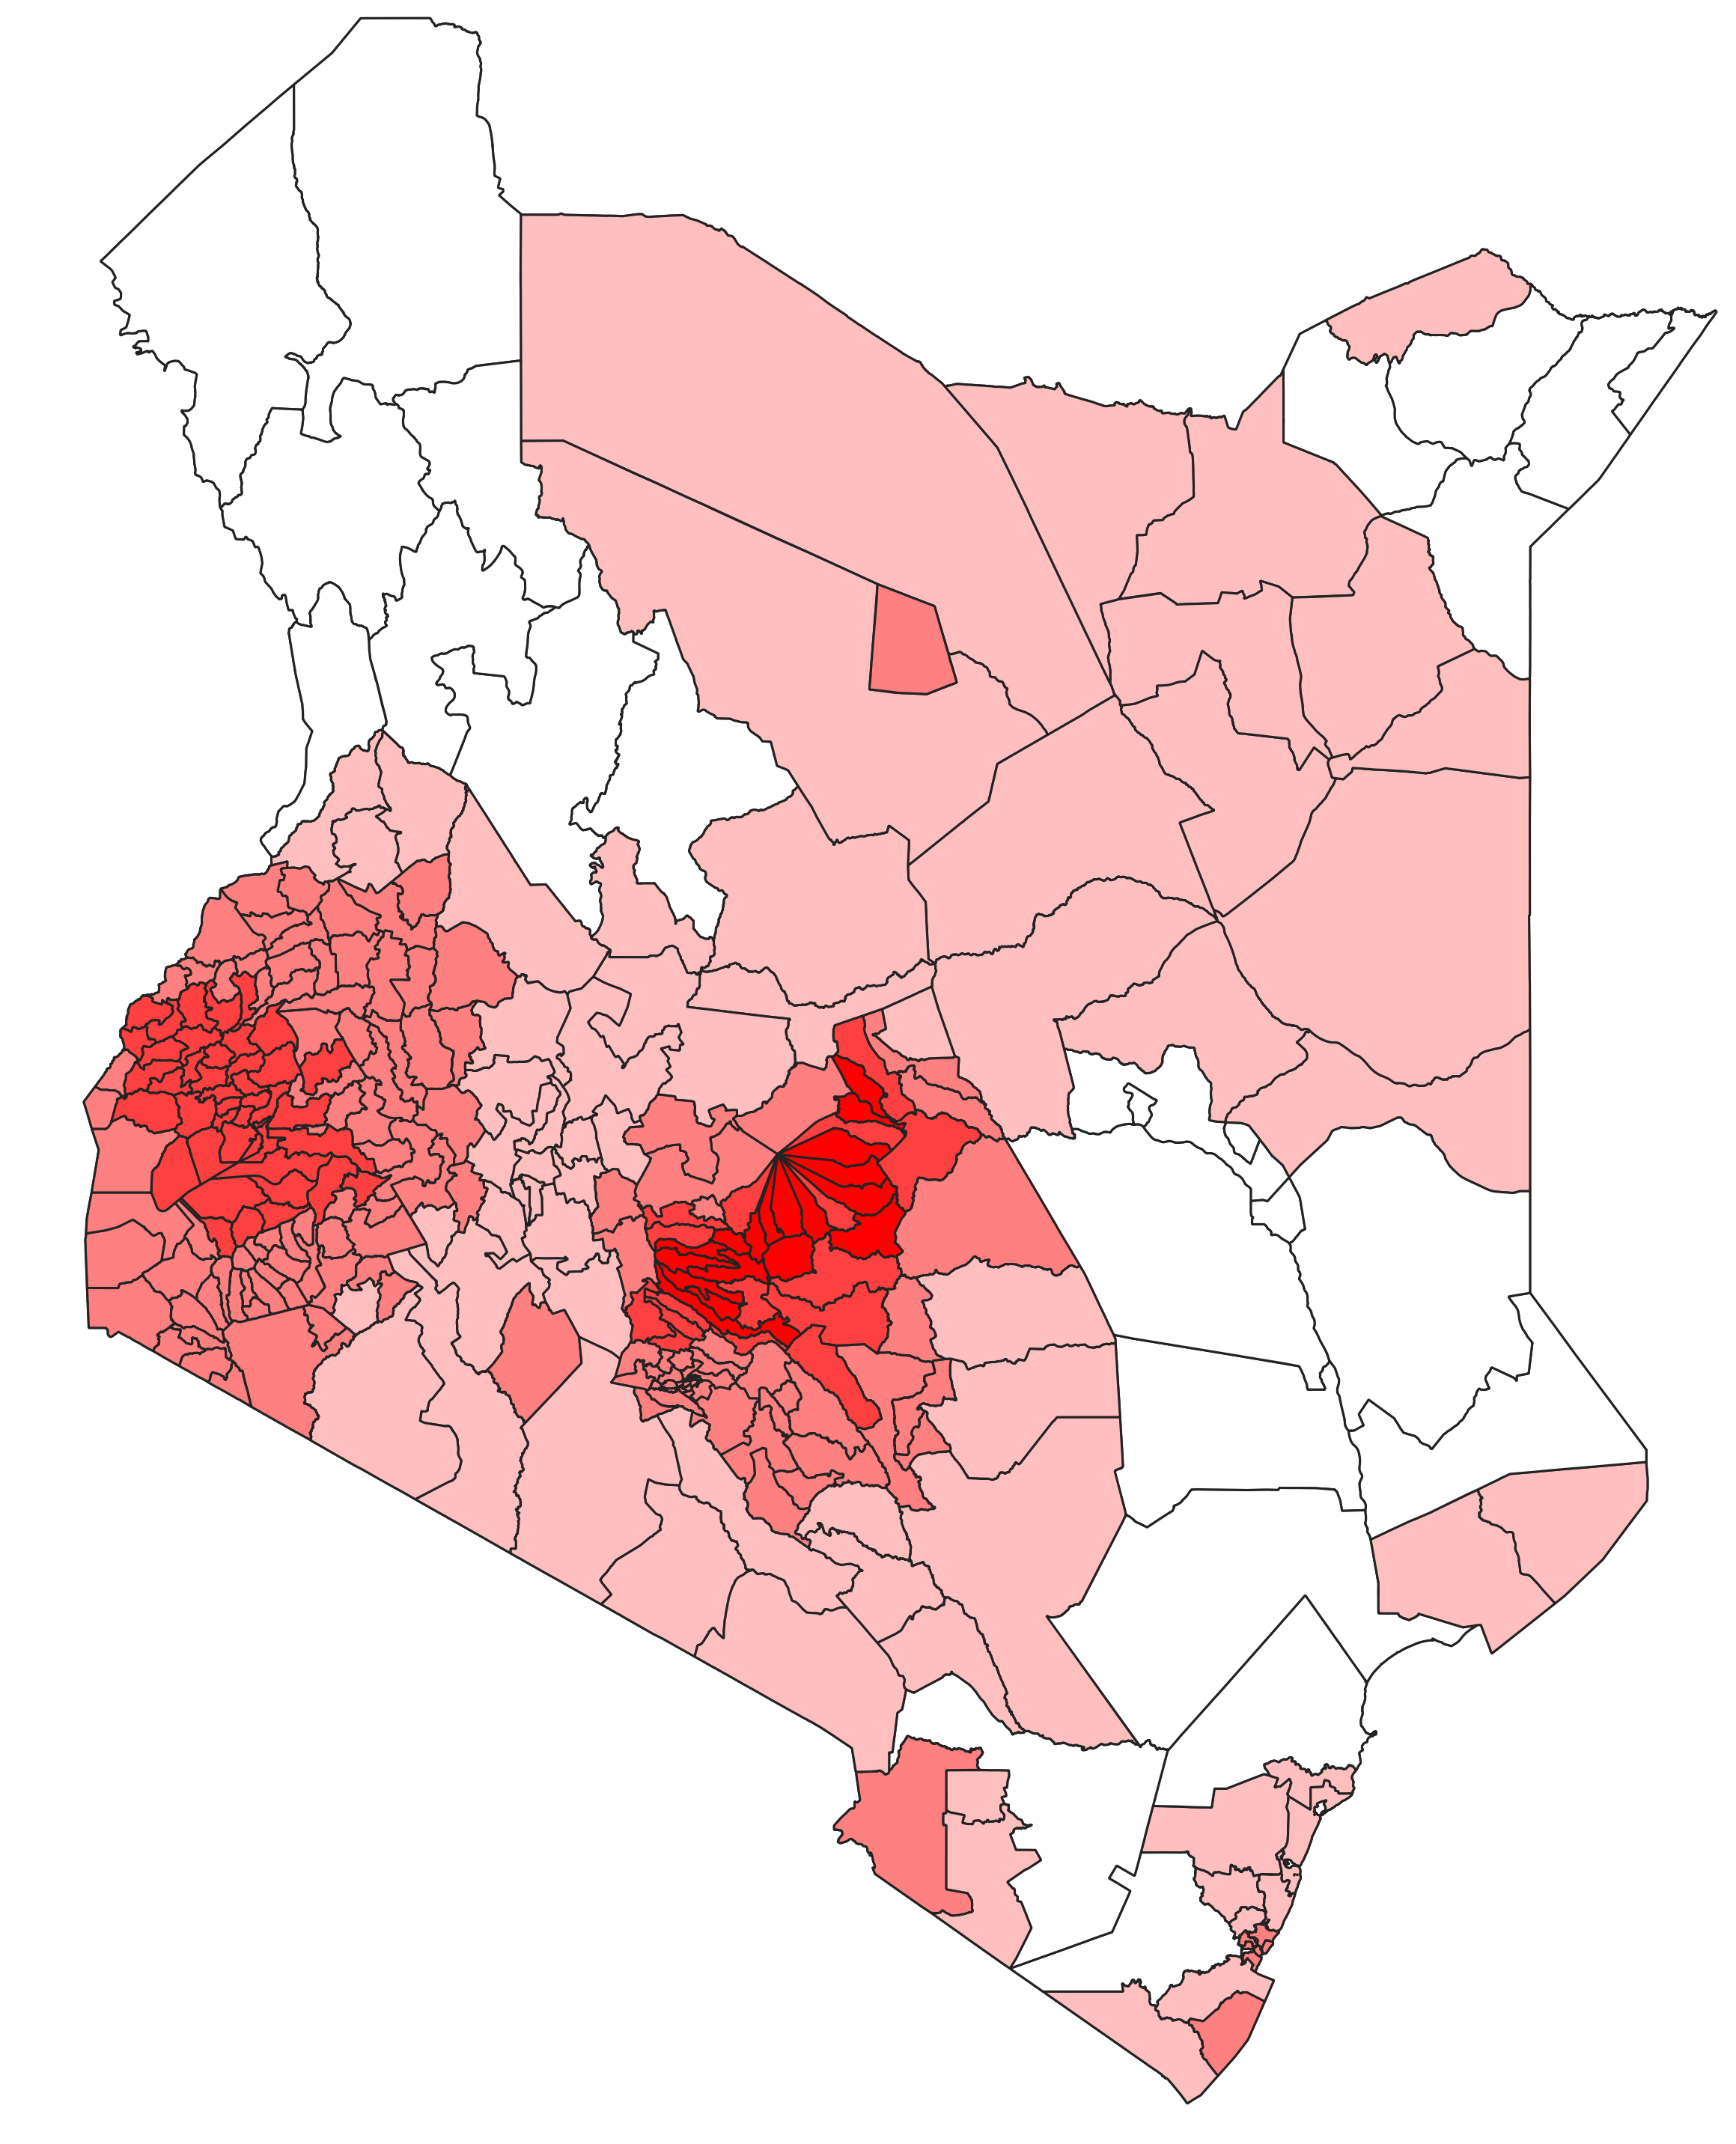 20-year mean precipitation levels in April, mapped at the constituency level